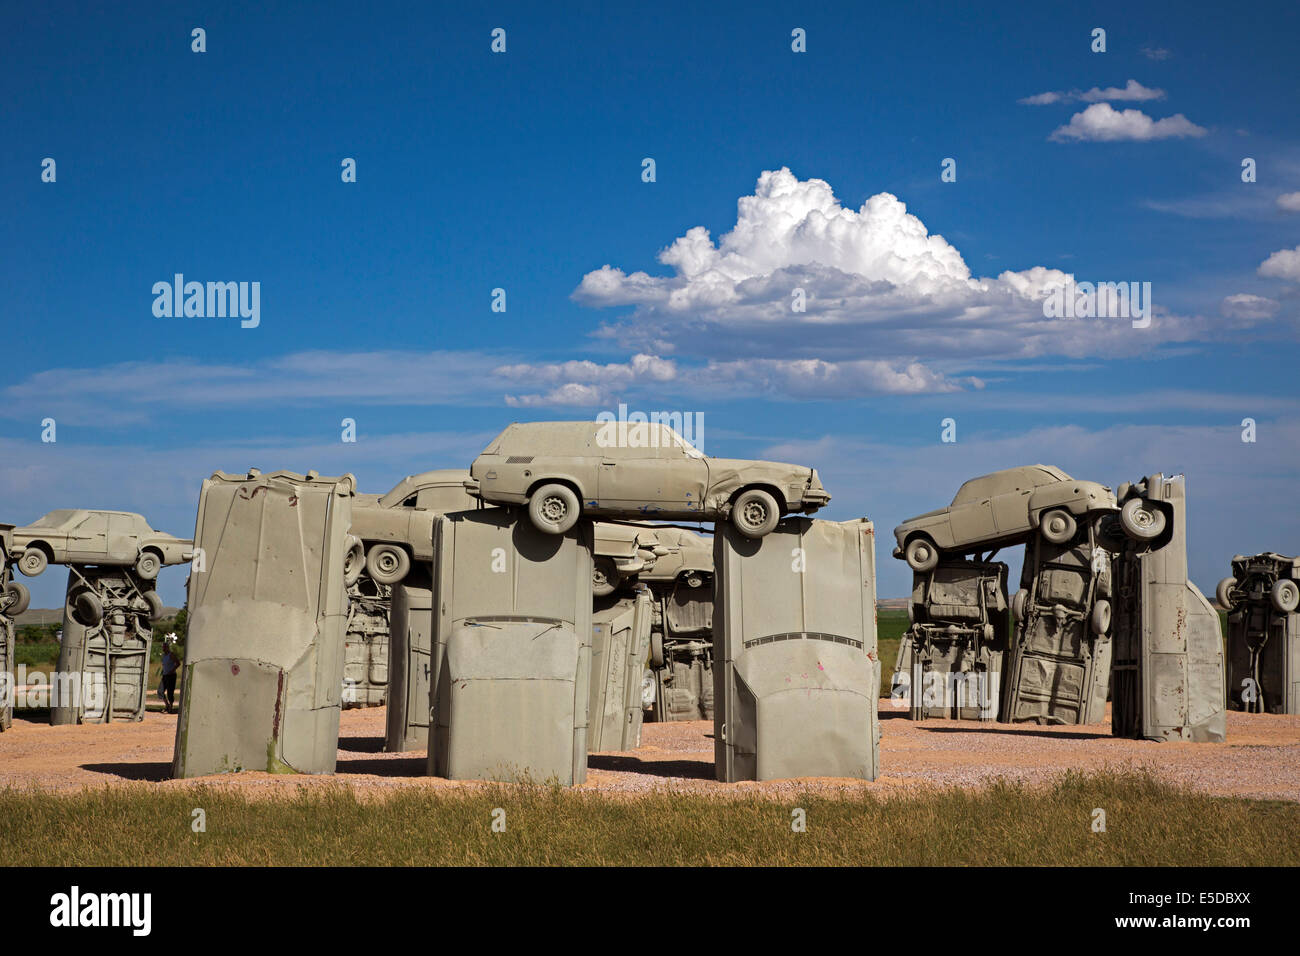 Alliance, Nebraska - Carhenge, a circle of old cars bolted together and half buried in the ground. Stock Photo